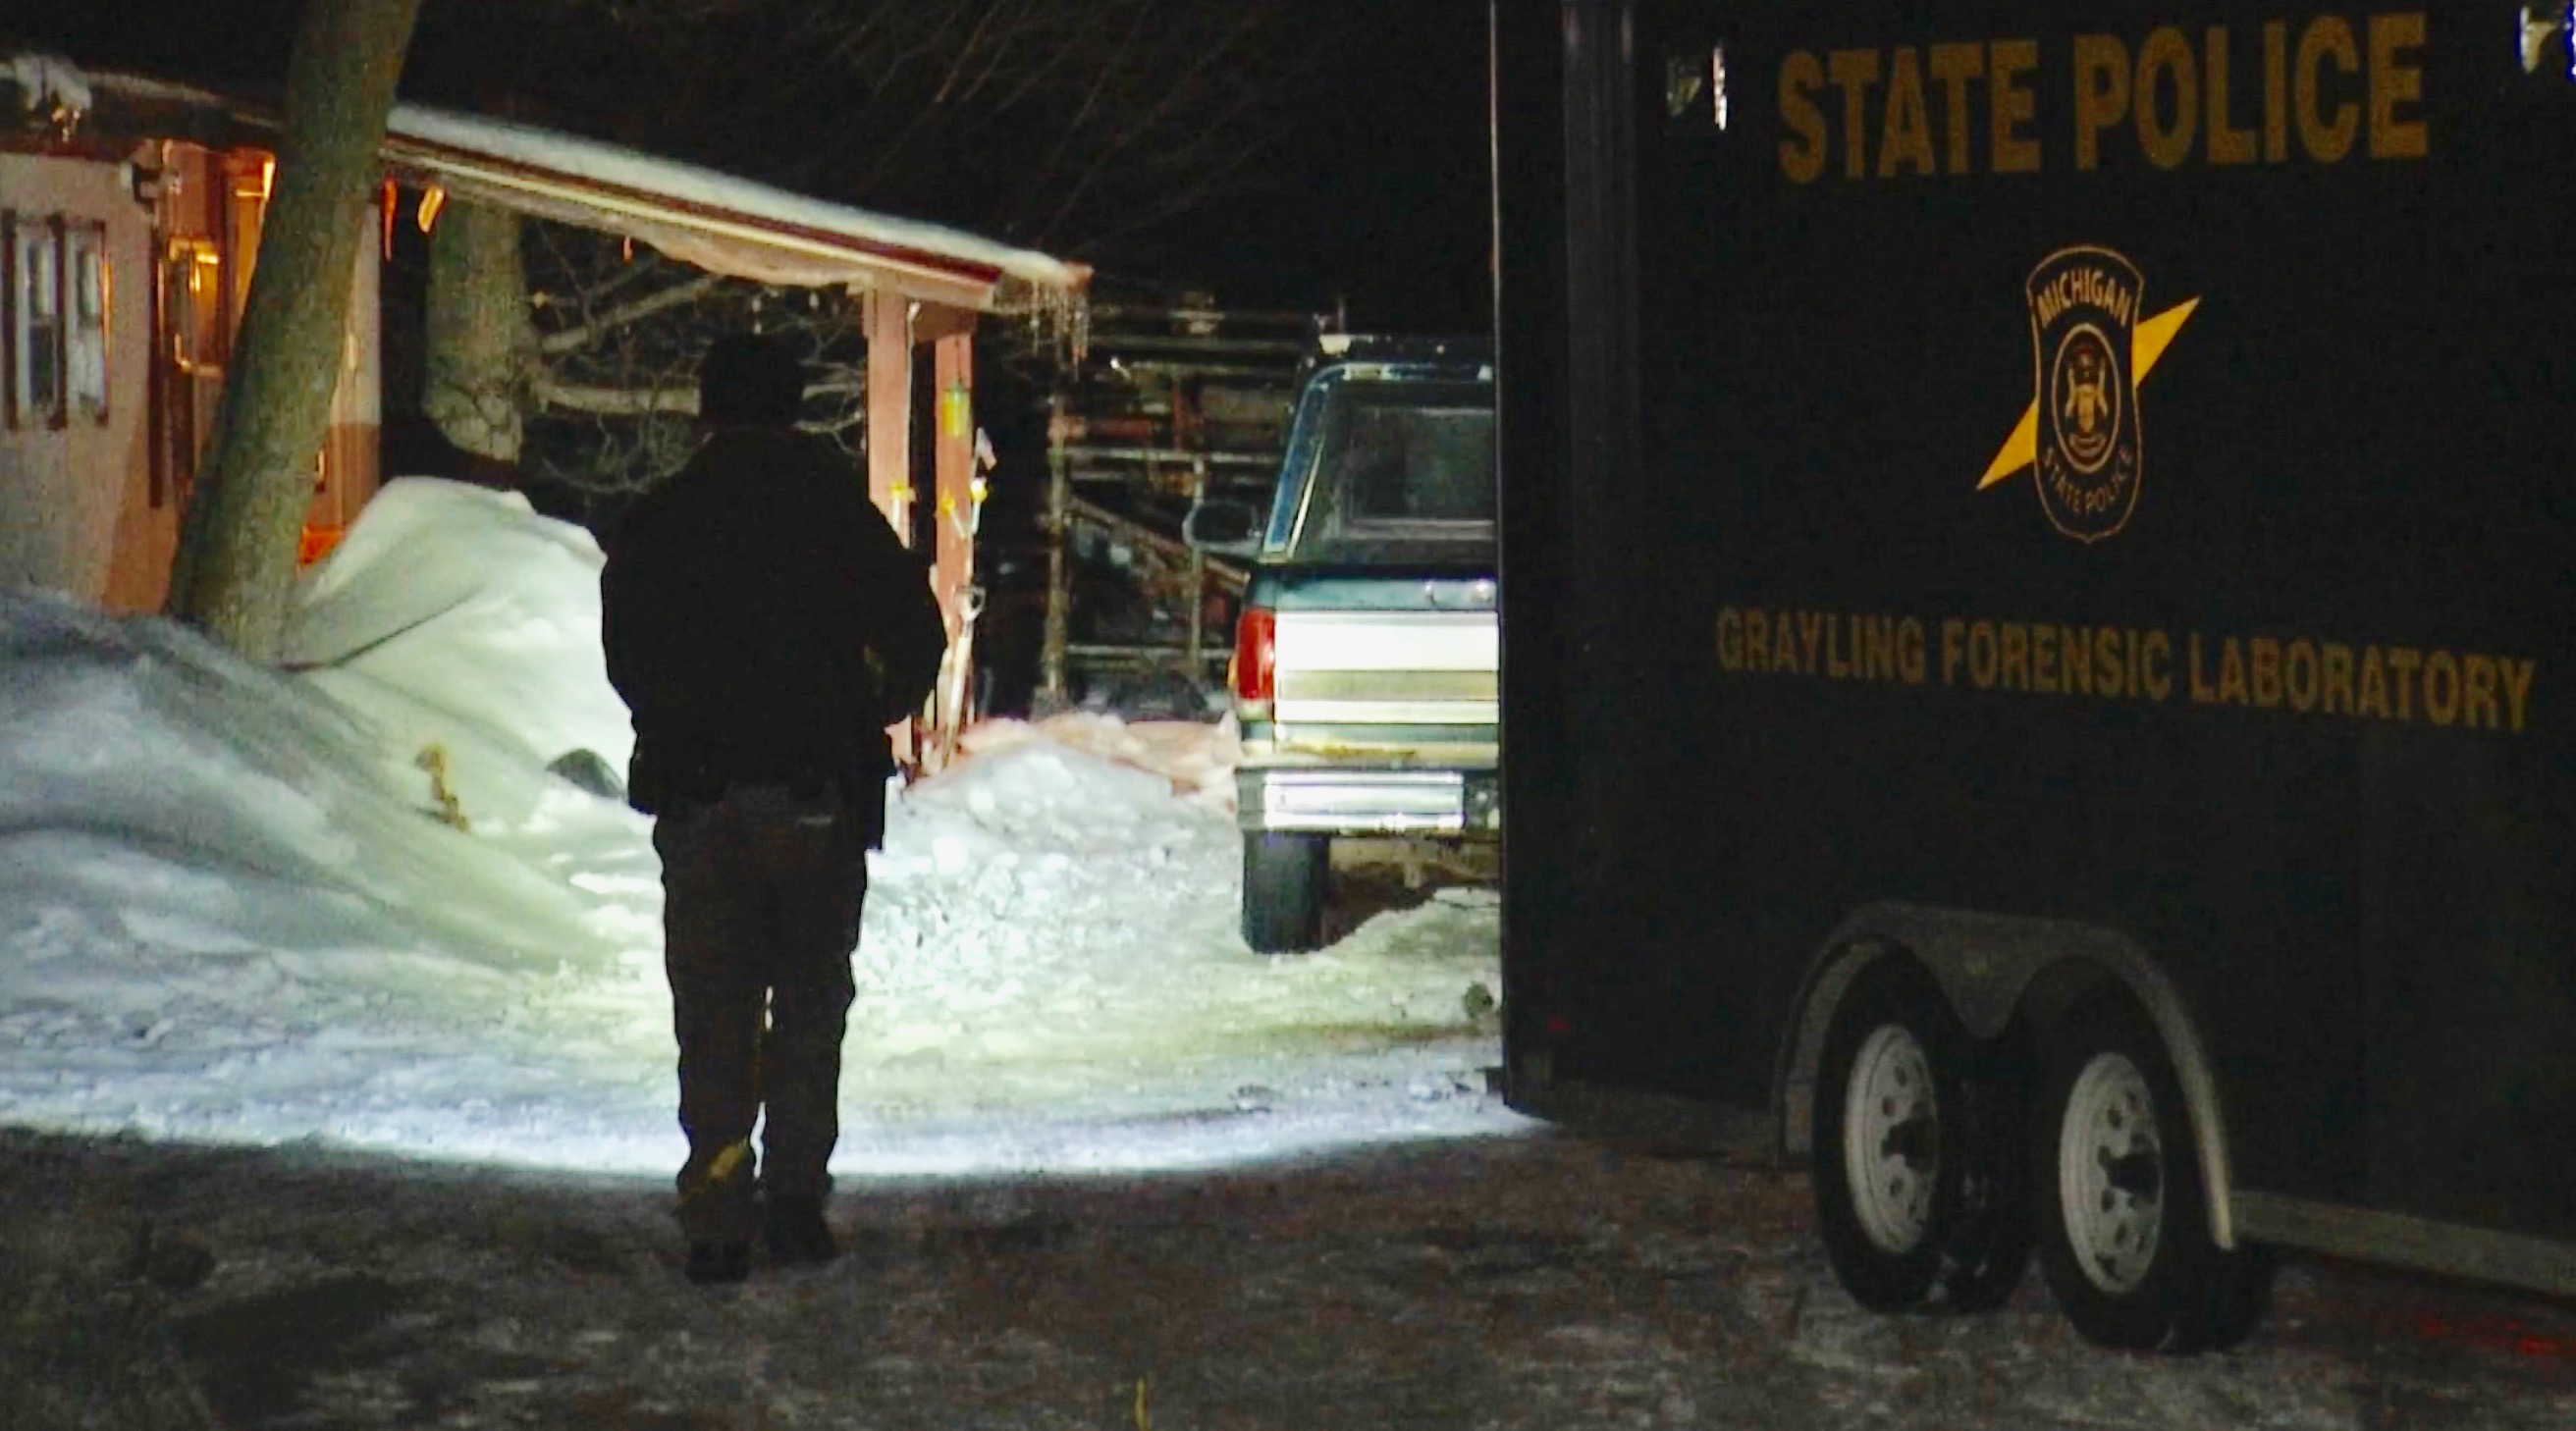 Emmet County Officials Investigating After Finding 2 Dead